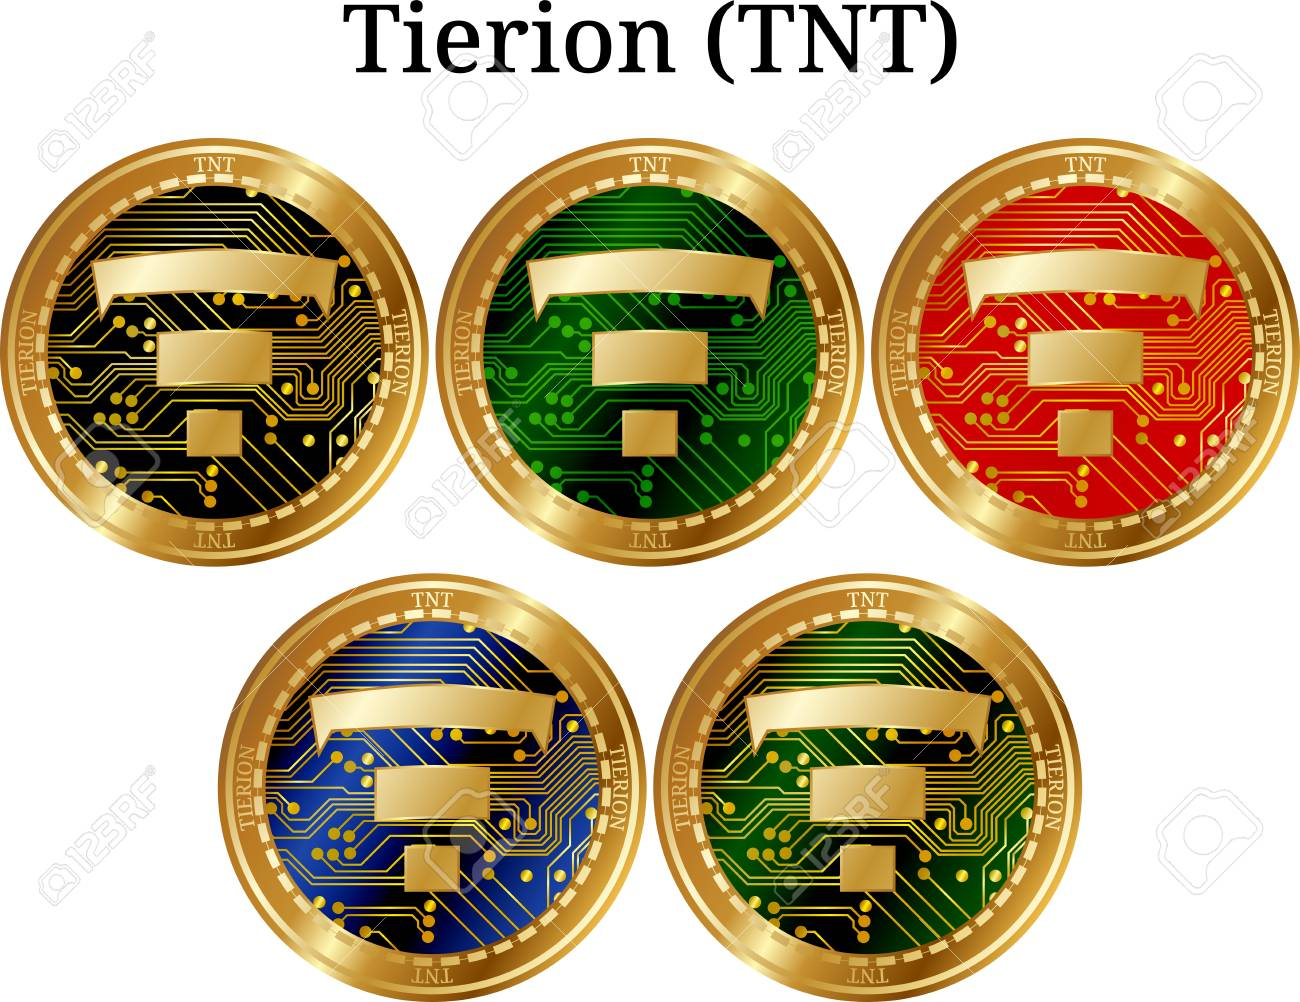 buy tnt cryptocurrency